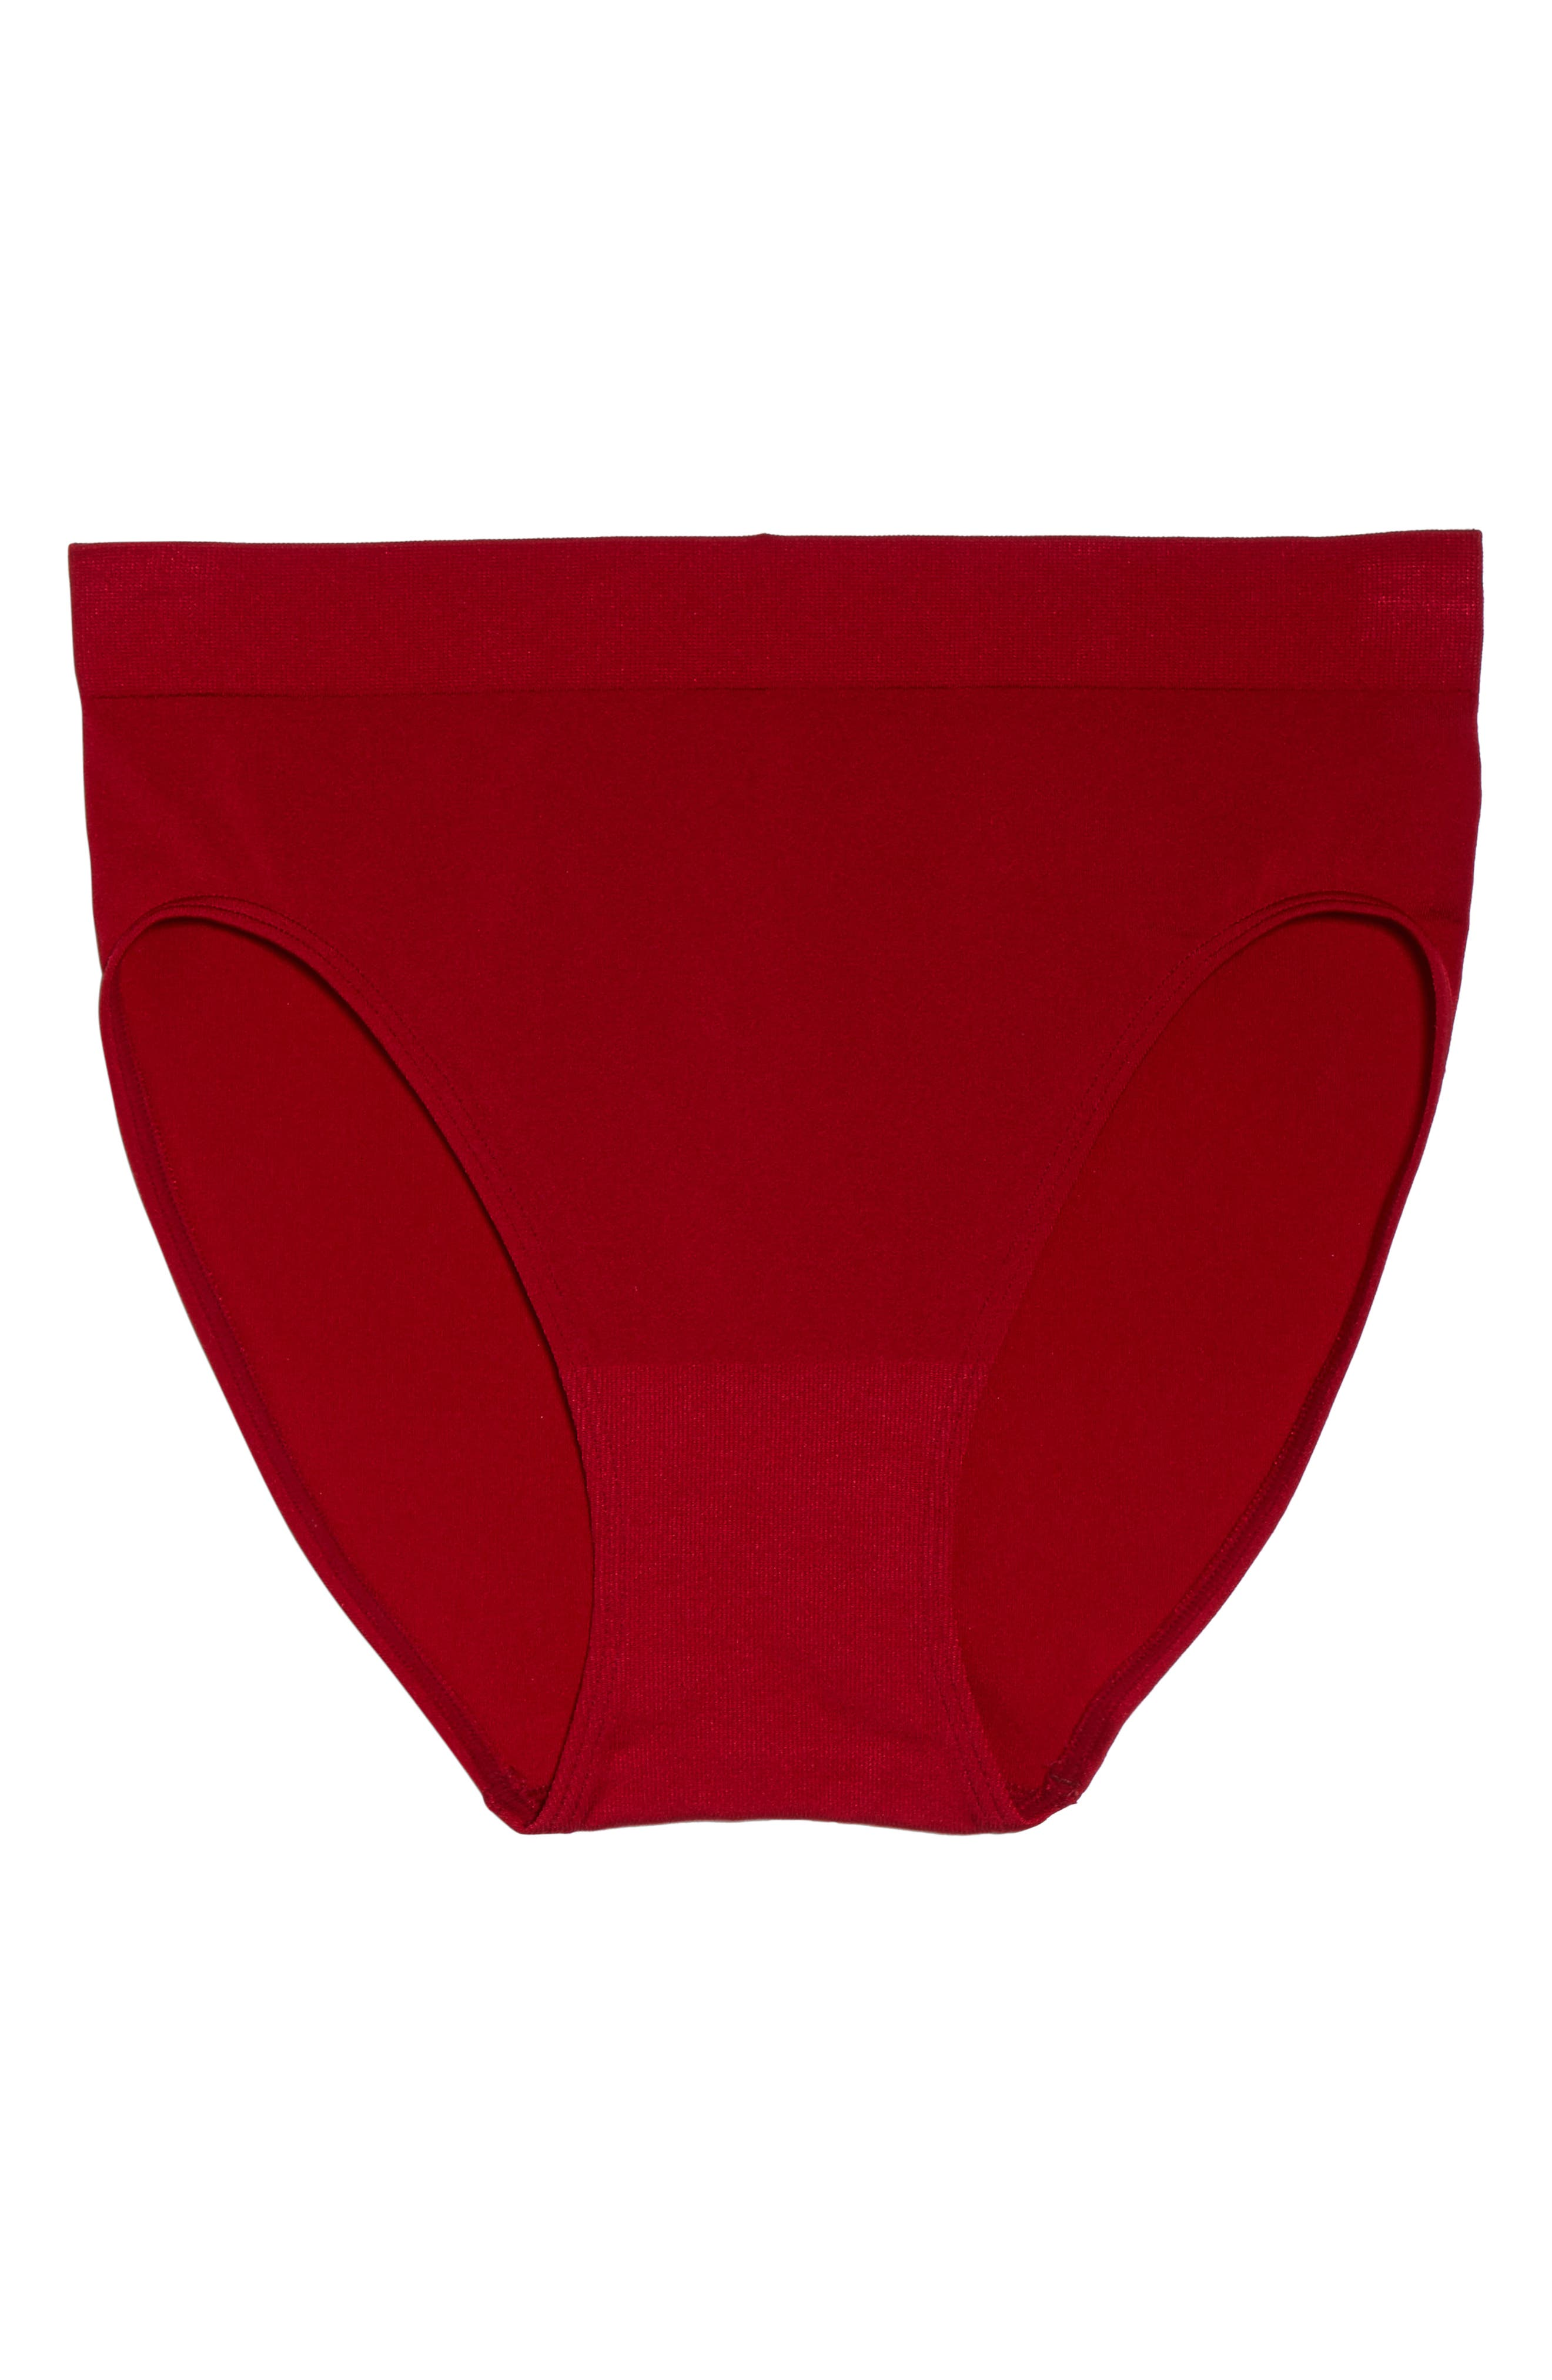 B Smooth High Cut Briefs,                             Alternate thumbnail 6, color,                             JESTER RED